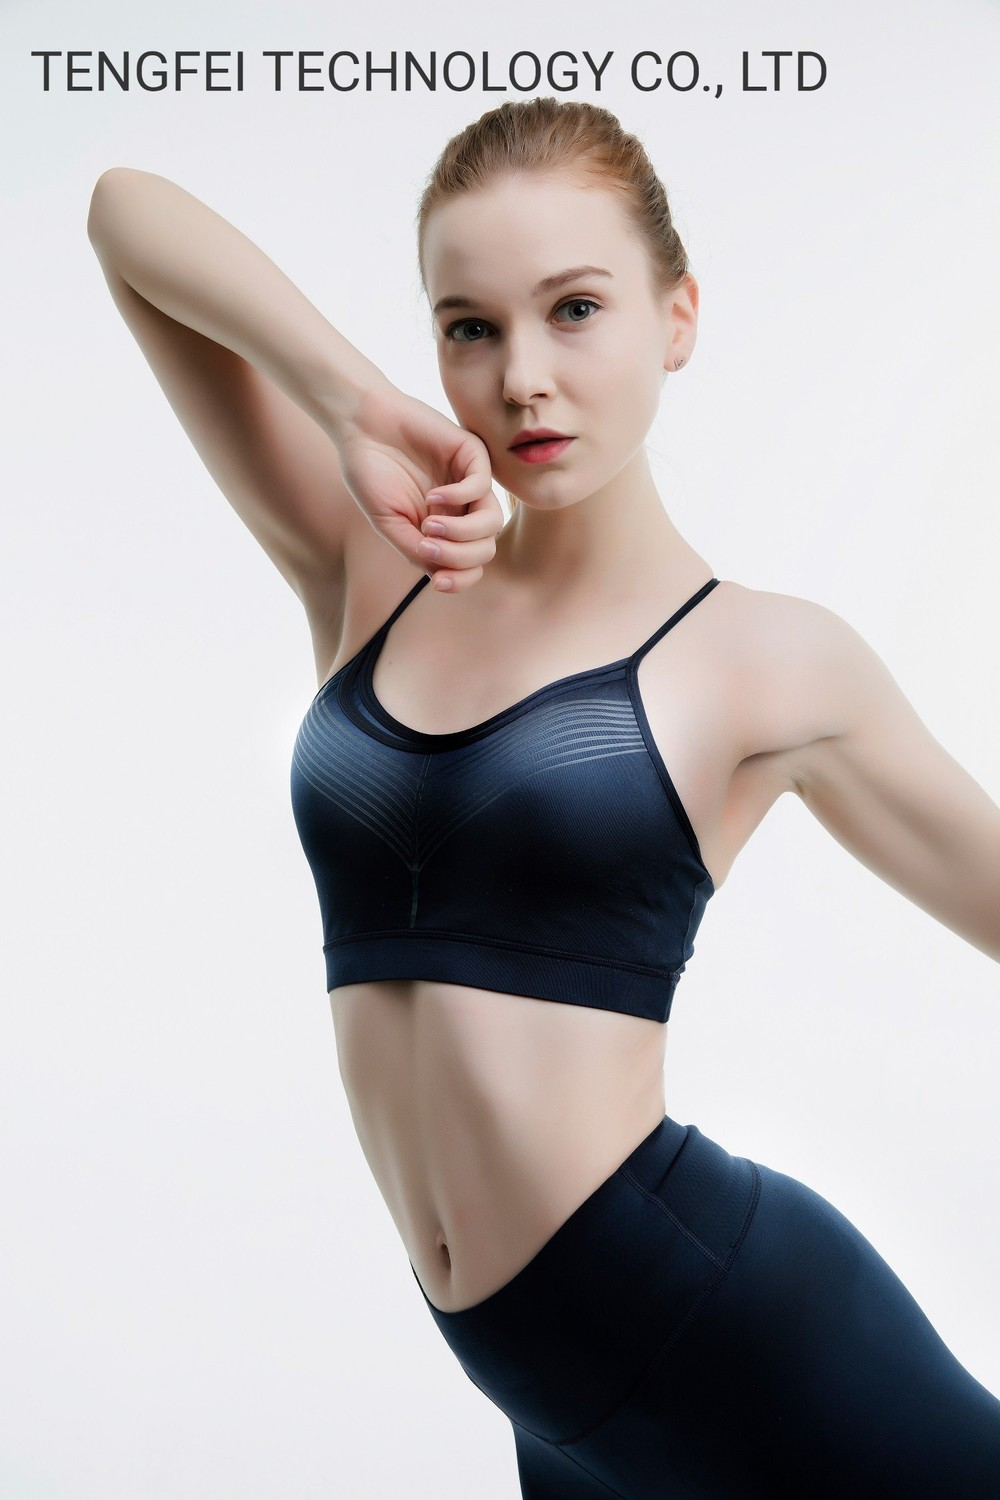 Limax Leisure and Compressive Slimming Yoga Gym Sports Bra and Legging Suit